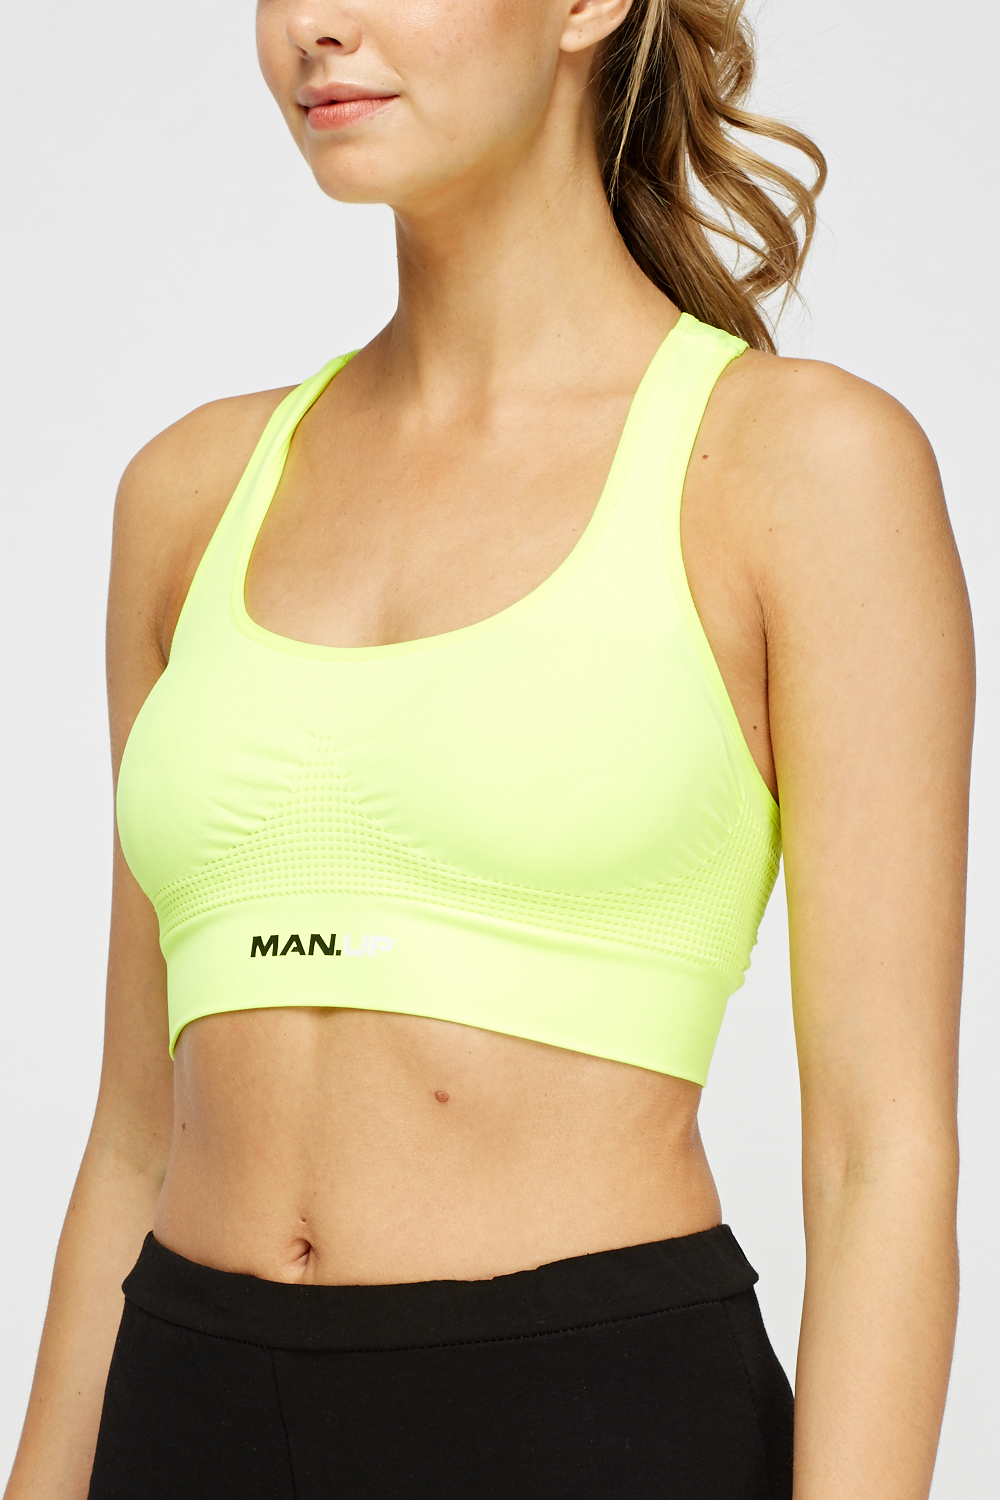 neon yellow sportswear fit leggings just do it nike air pegasus sports bra sportbra run kaylaitsines nike pro blouse shoes Find this Pin and more on Athletic gear! by Teena Pham. We love adidas at Get custom Adidas gear today!